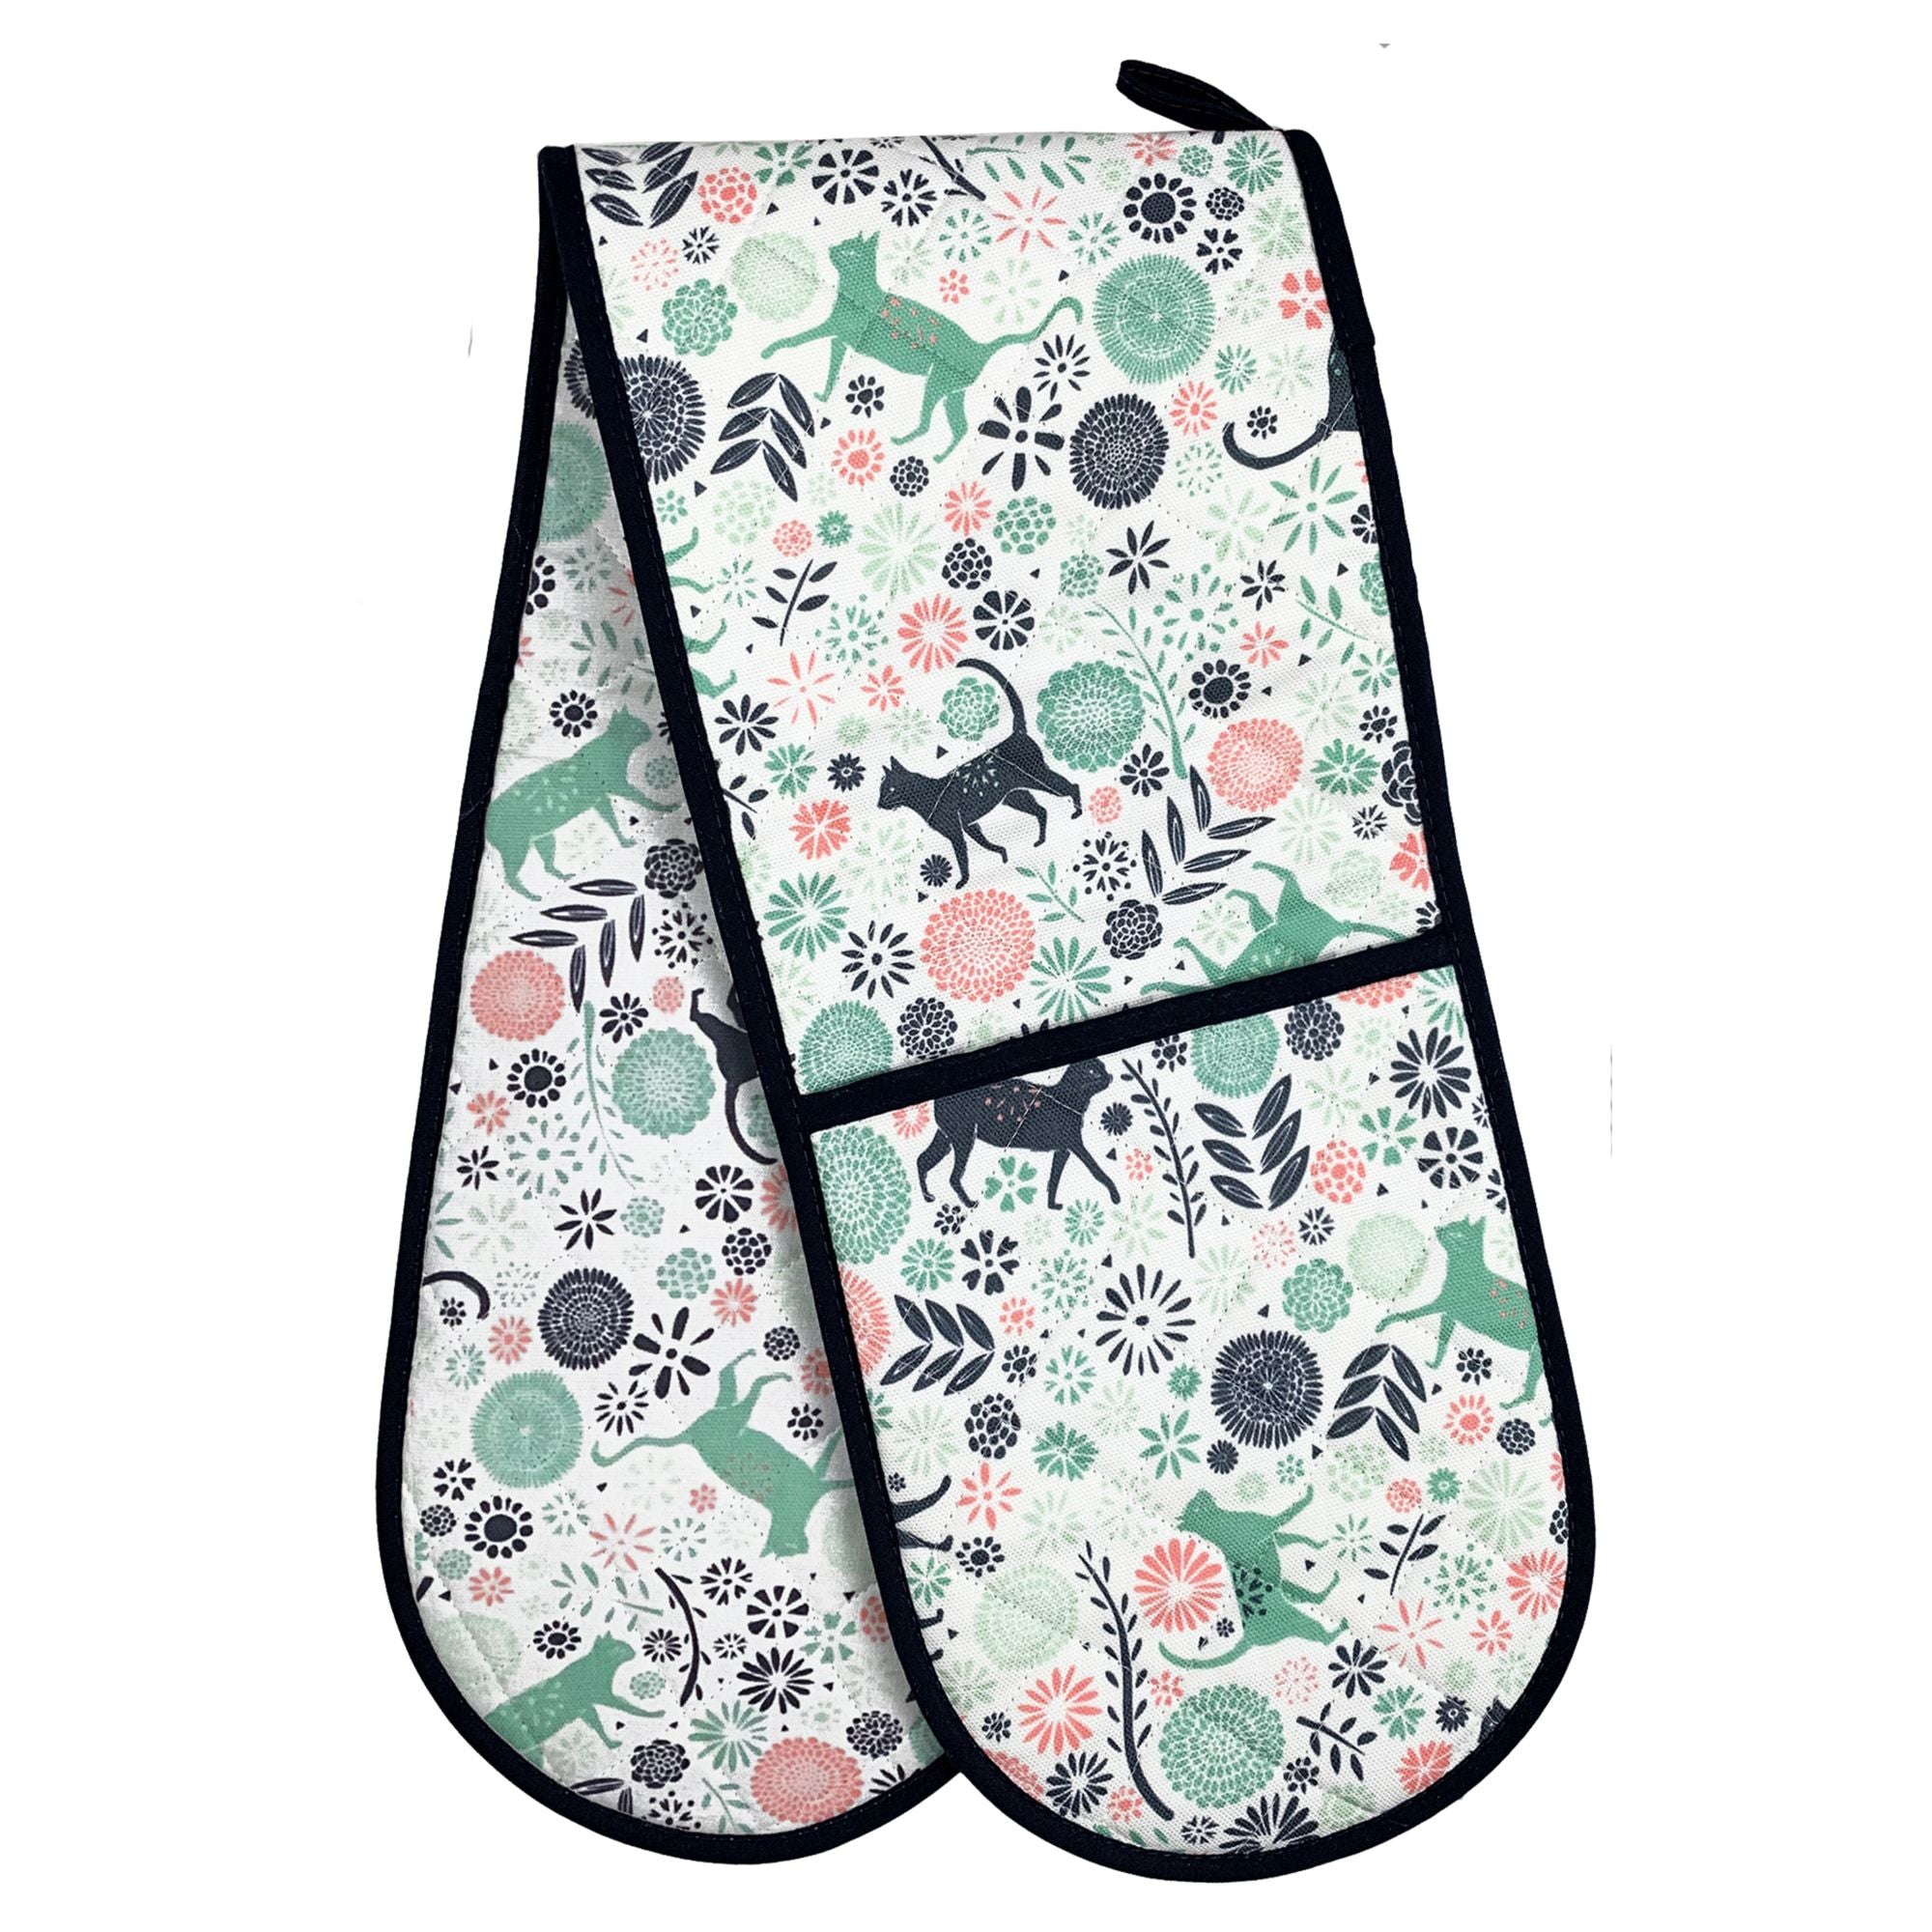 KItchen Cats Double Oven Glove